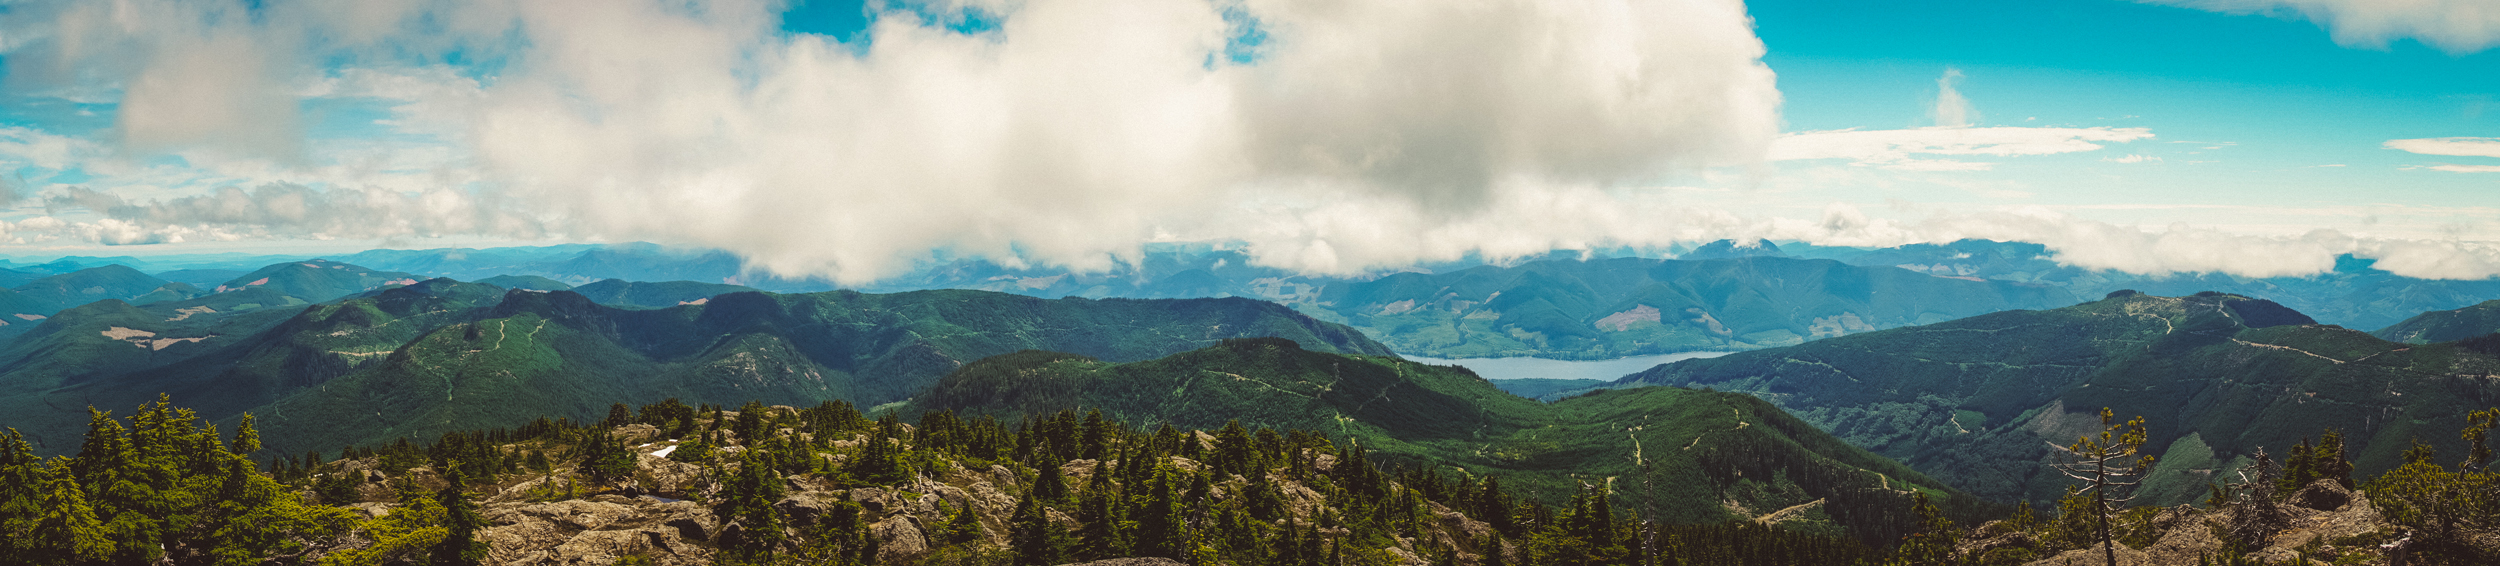 A panorama from the top of Landale with Lake Cowichan visible.